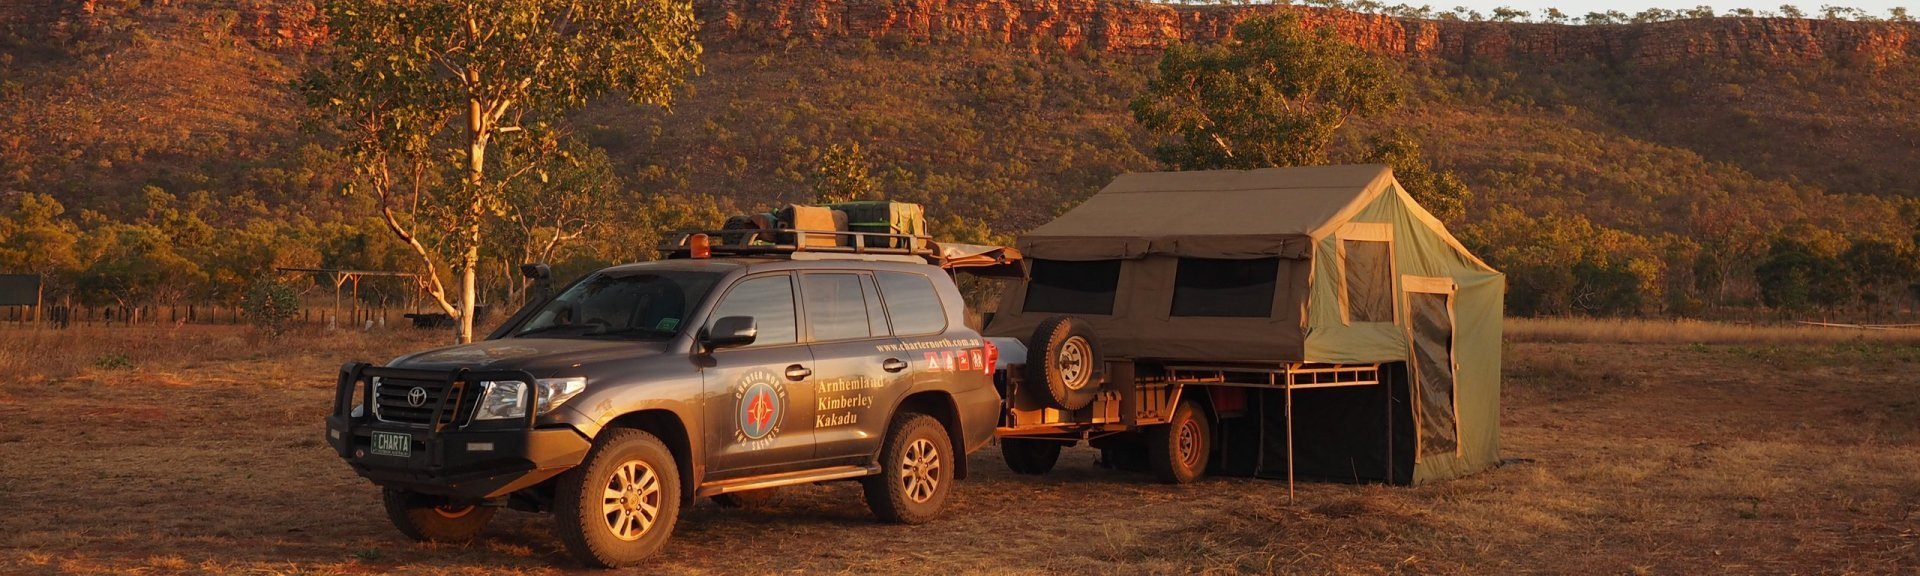 The spacious, comfortable camper trailer. Photo: Charter North 4WD Safaris